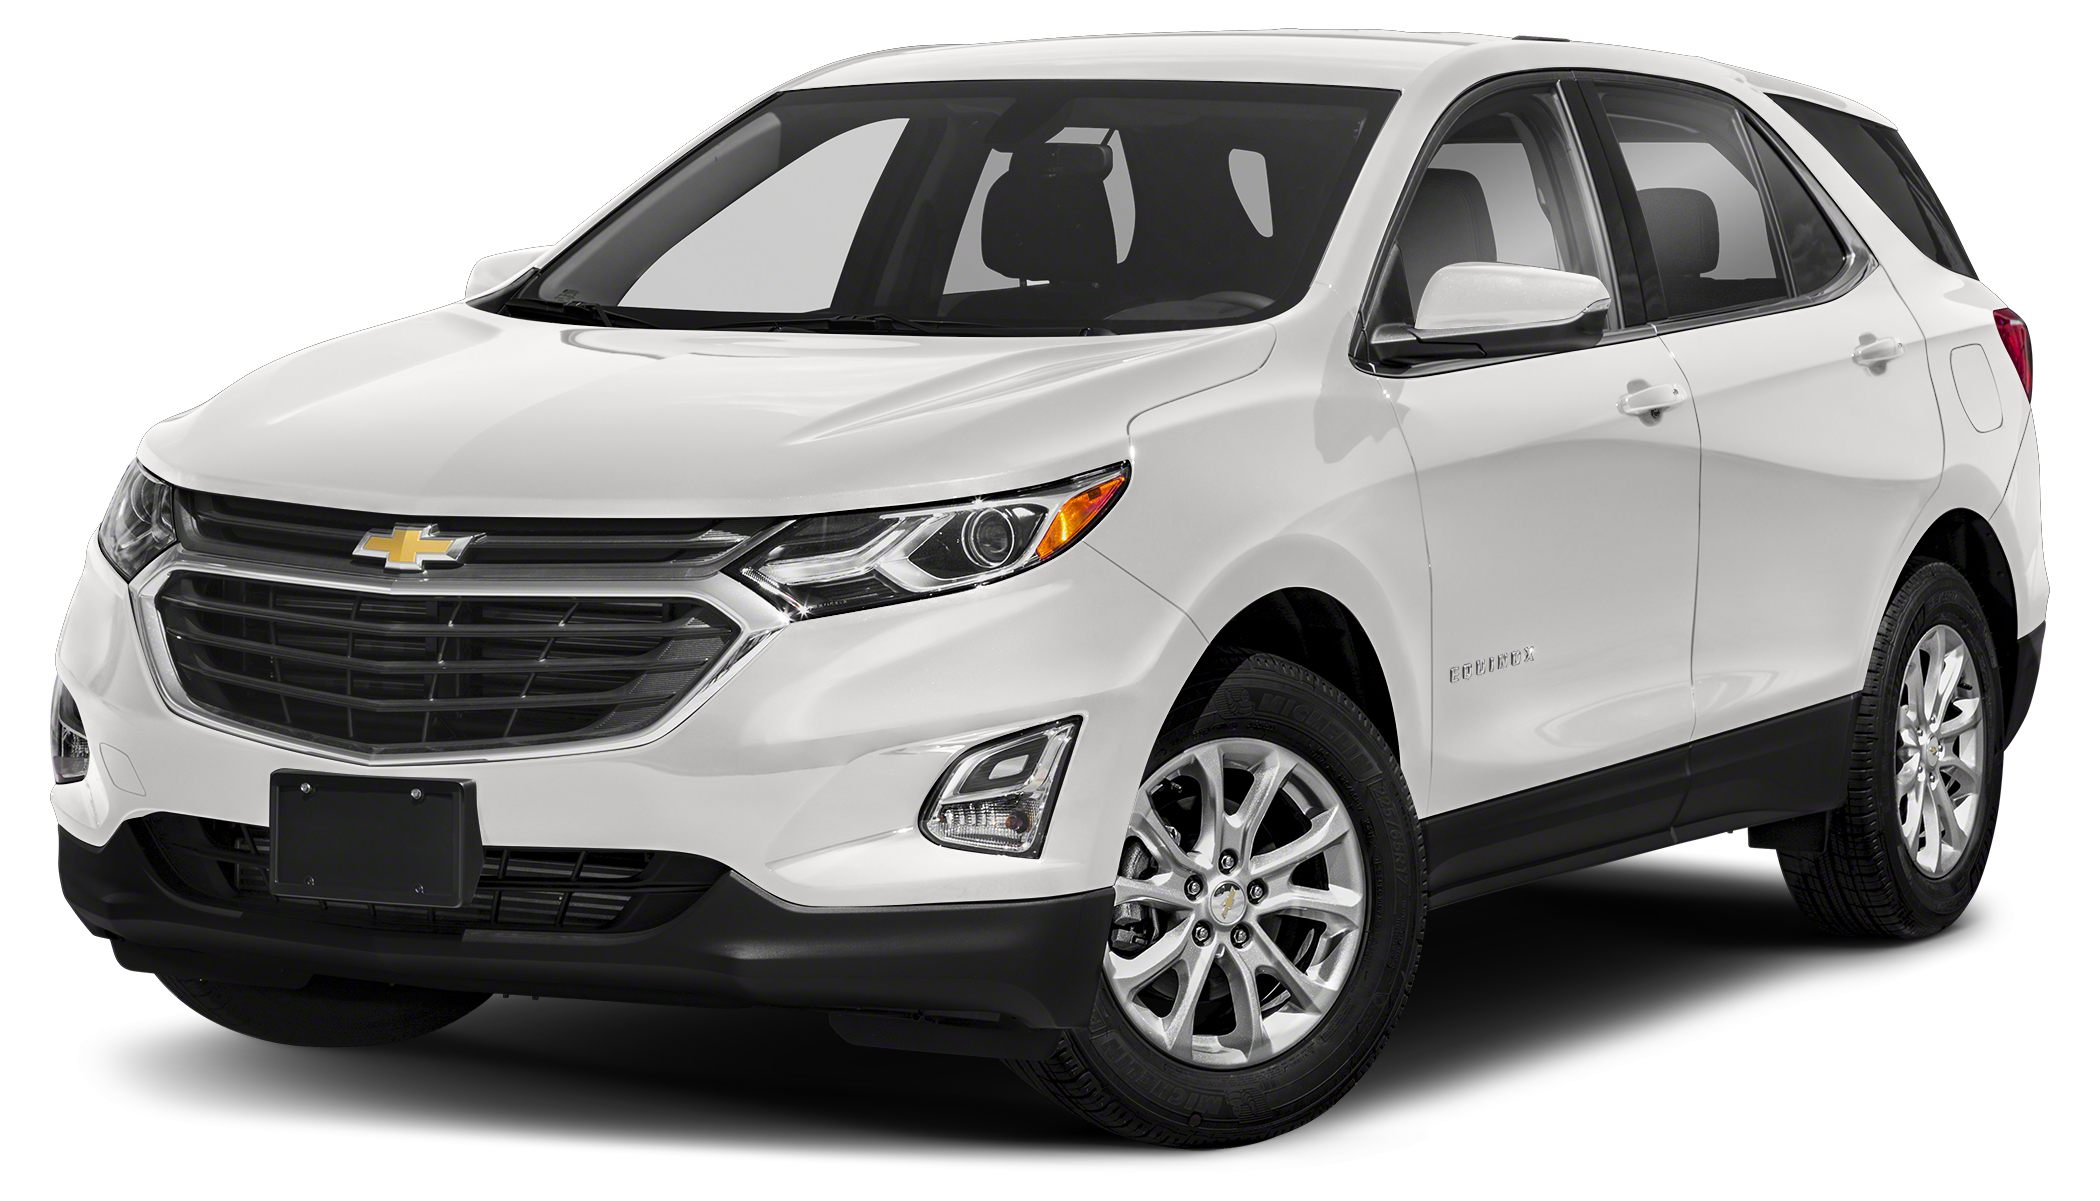 2018 Chevrolet Equinox LT w3LT Summit White 2018 Chevrolet Equinox LT FWD 6-Speed Automatic 16L